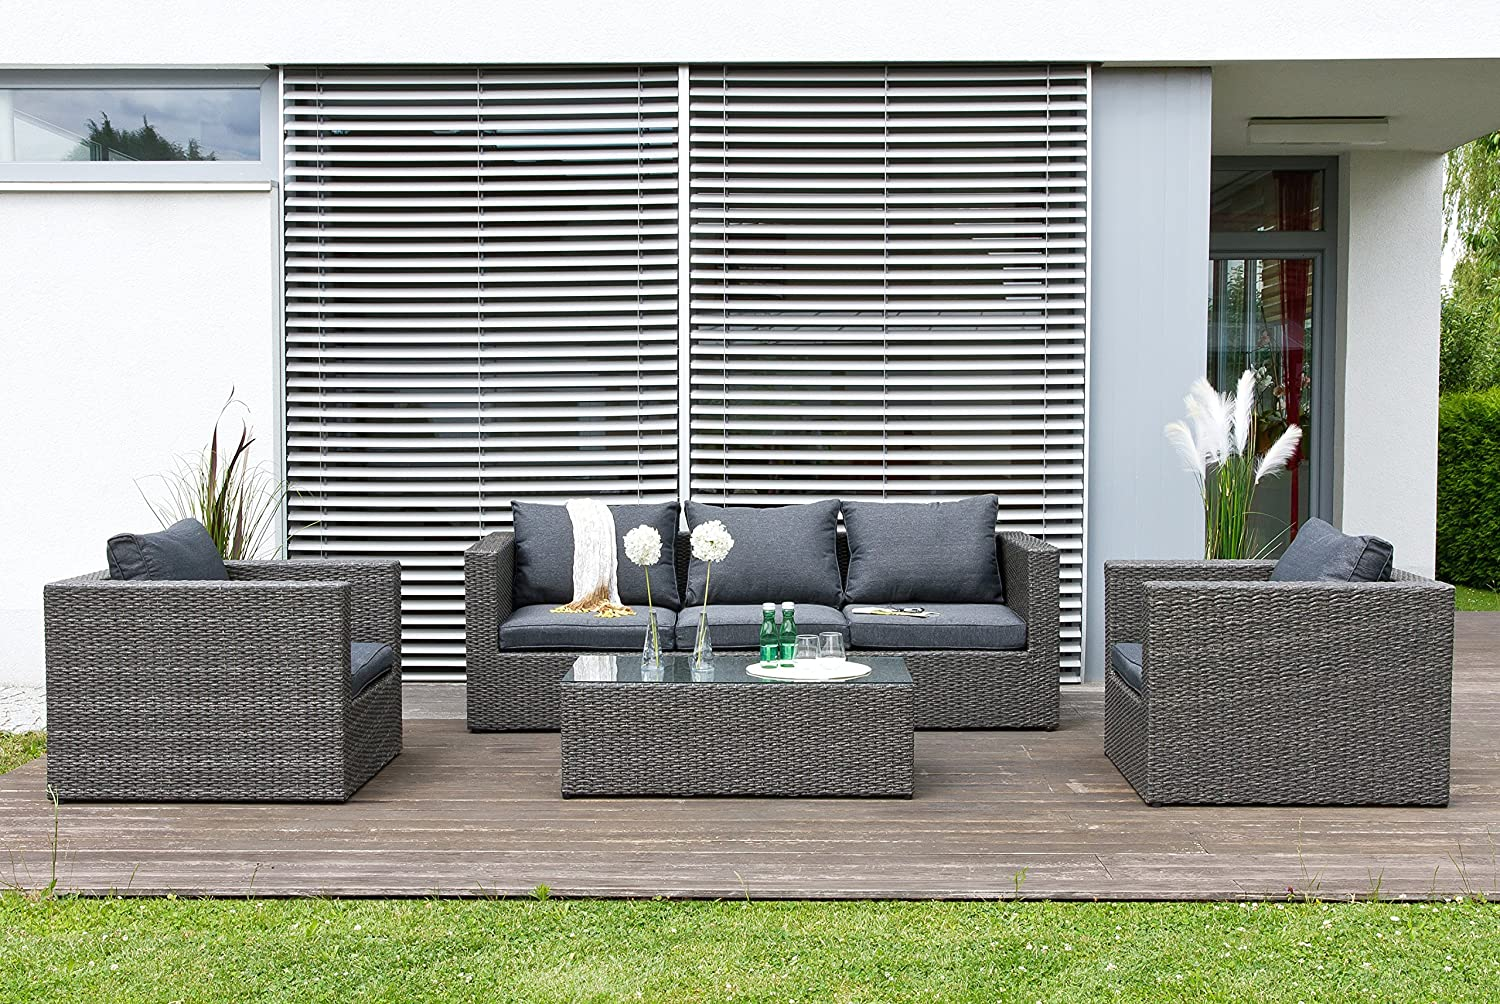 rattan gartengarnitur lounge nomade garten sitzgruppe mit. Black Bedroom Furniture Sets. Home Design Ideas